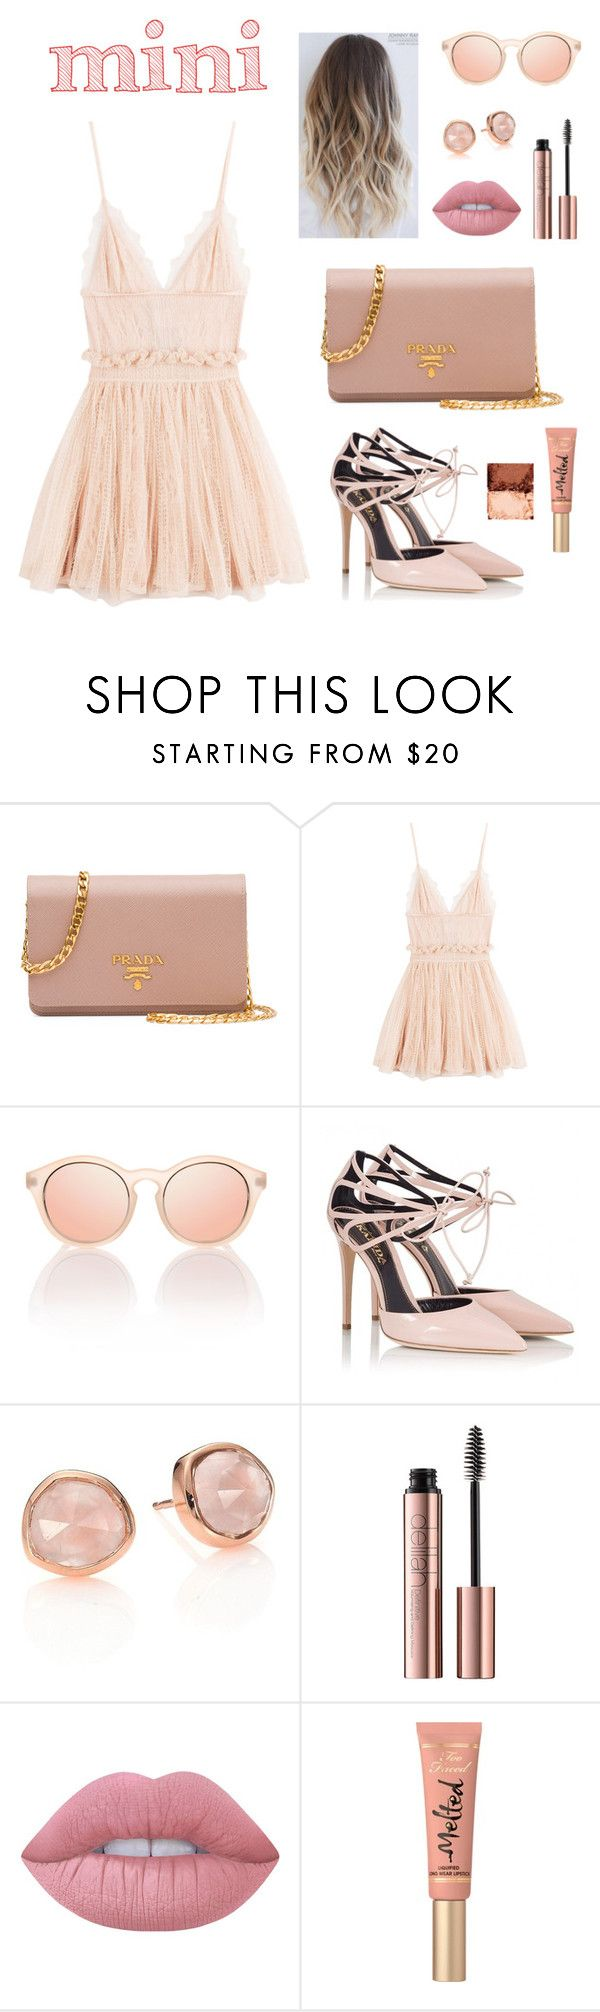 """""""Sweet mini handbag 💕"""" by anna-styles14 ❤ liked on Polyvore featuring Prada, Alexander McQueen, Le Specs, Fratelli Karida, Monica Vinader, Lime Crime, Too Faced Cosmetics and NYX"""